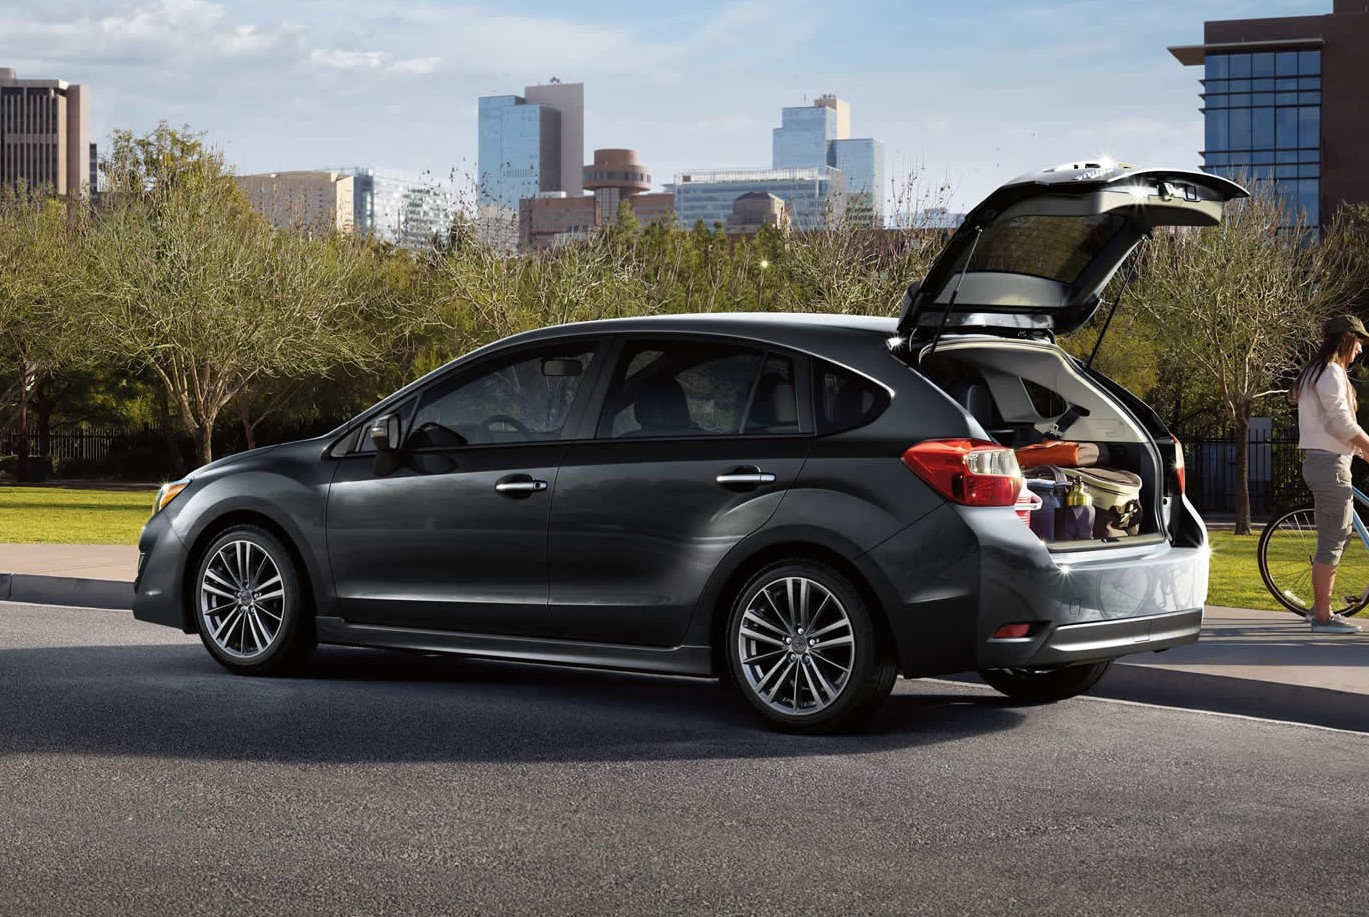 subaru prices 2016 impreza. Black Bedroom Furniture Sets. Home Design Ideas